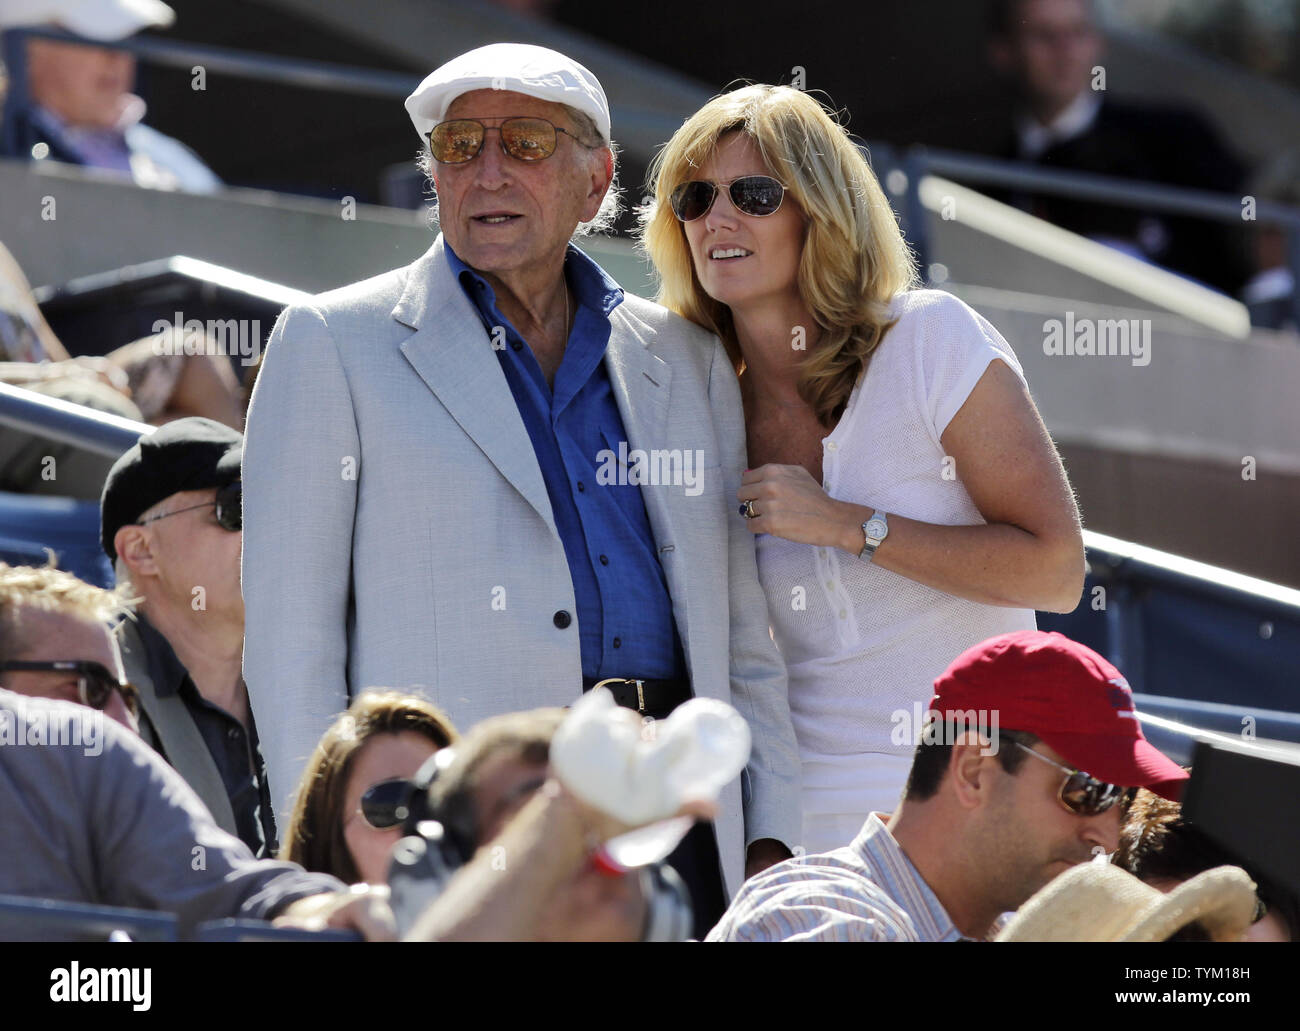 Tony Bennett and Susan Crow watch a match at the U.S. Open Tennis Championships in Arthur Ashe Stadium in New York City on September 11, 2010.  UPI/John Angelillo - Stock Image